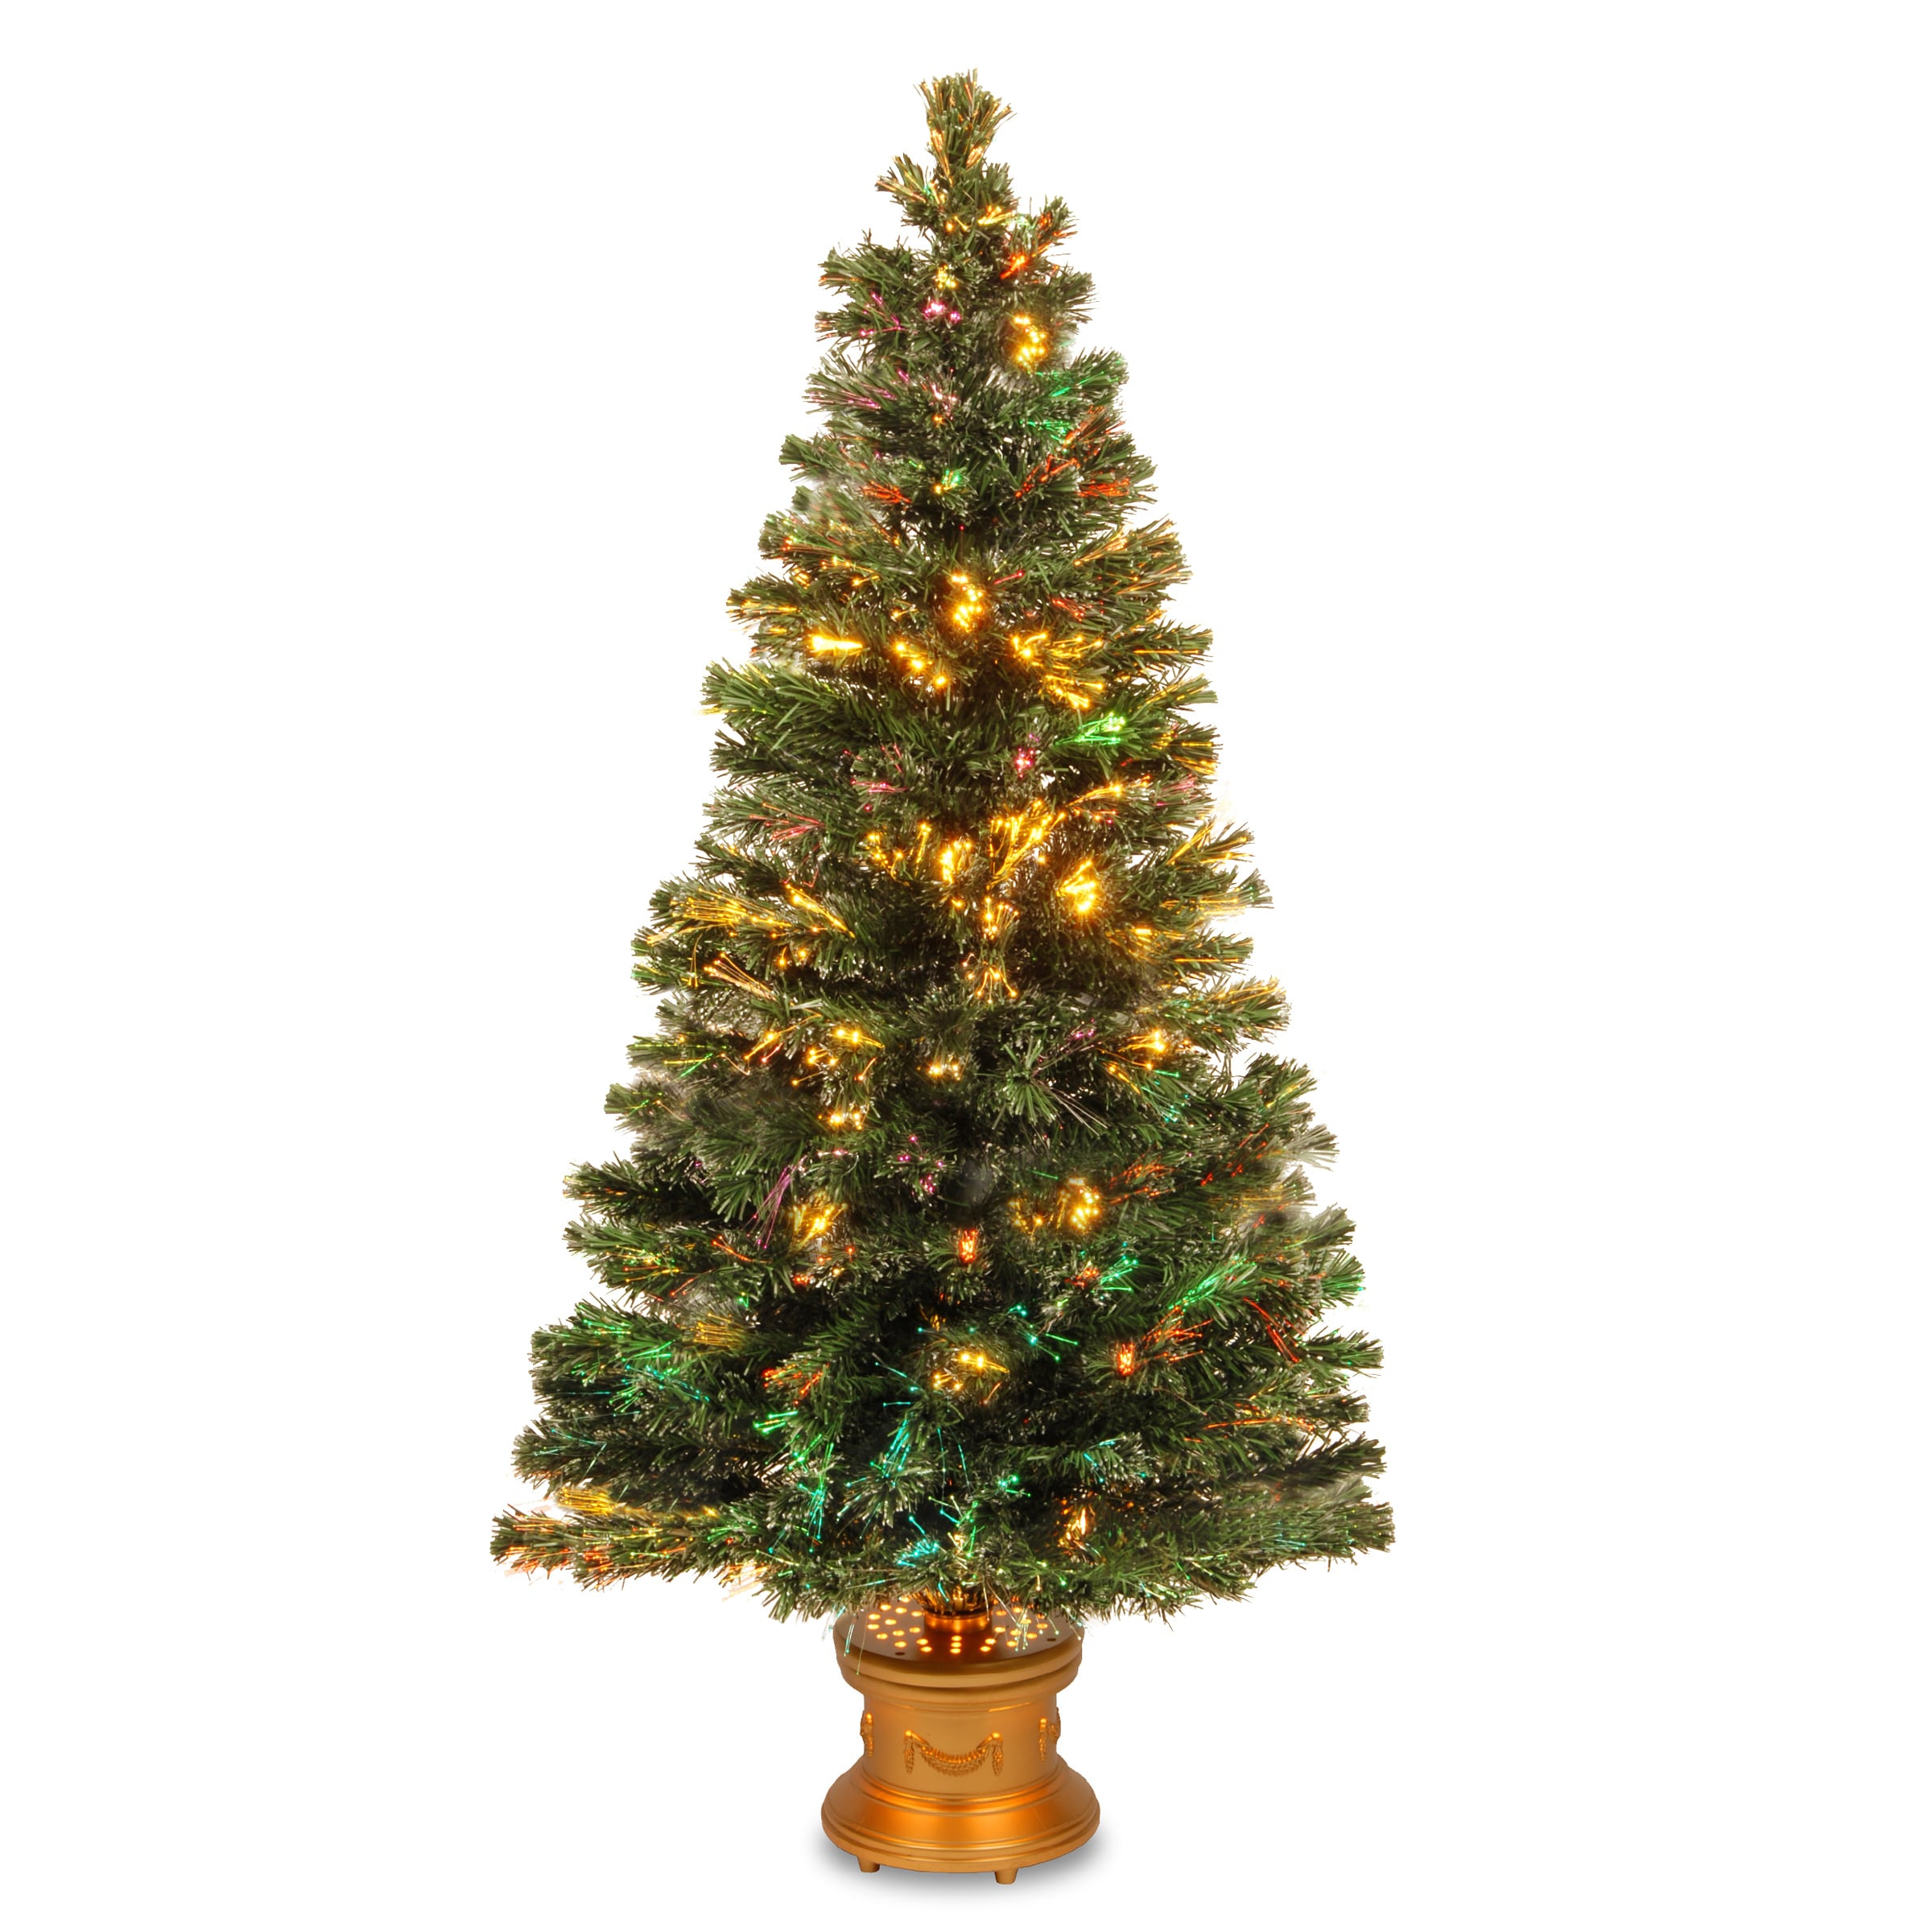 c7d0f692a4dc Shop 60-inch Fiber Optic Evergreen Firework Tree with Gold Base - Free  Shipping Today - Overstock - 9578511